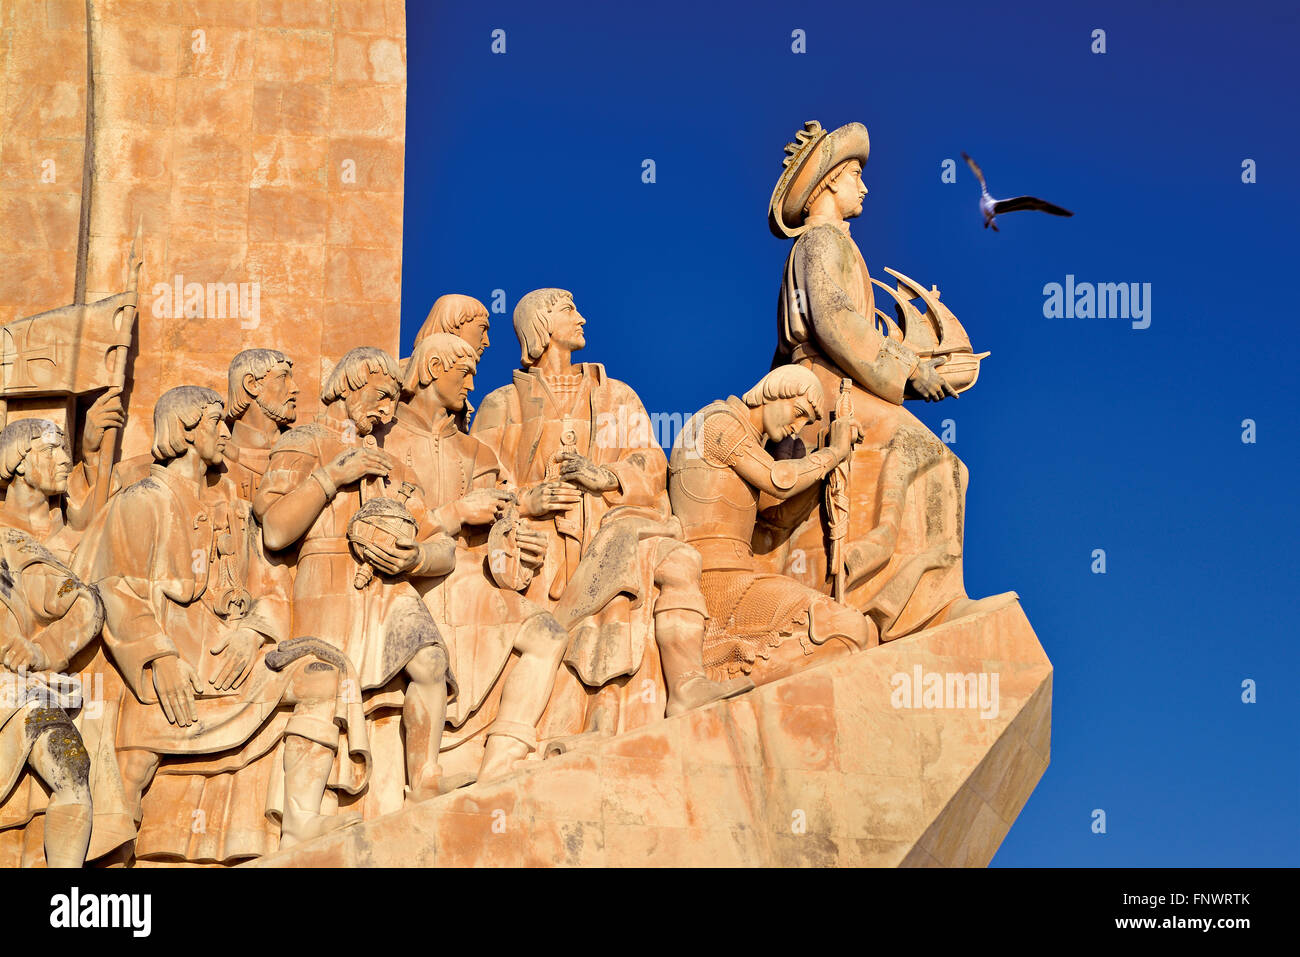 Portugal, Lisbon: Henry the Navigator leading  the figure group of the Discovery´s Monument in Belém - Stock Image